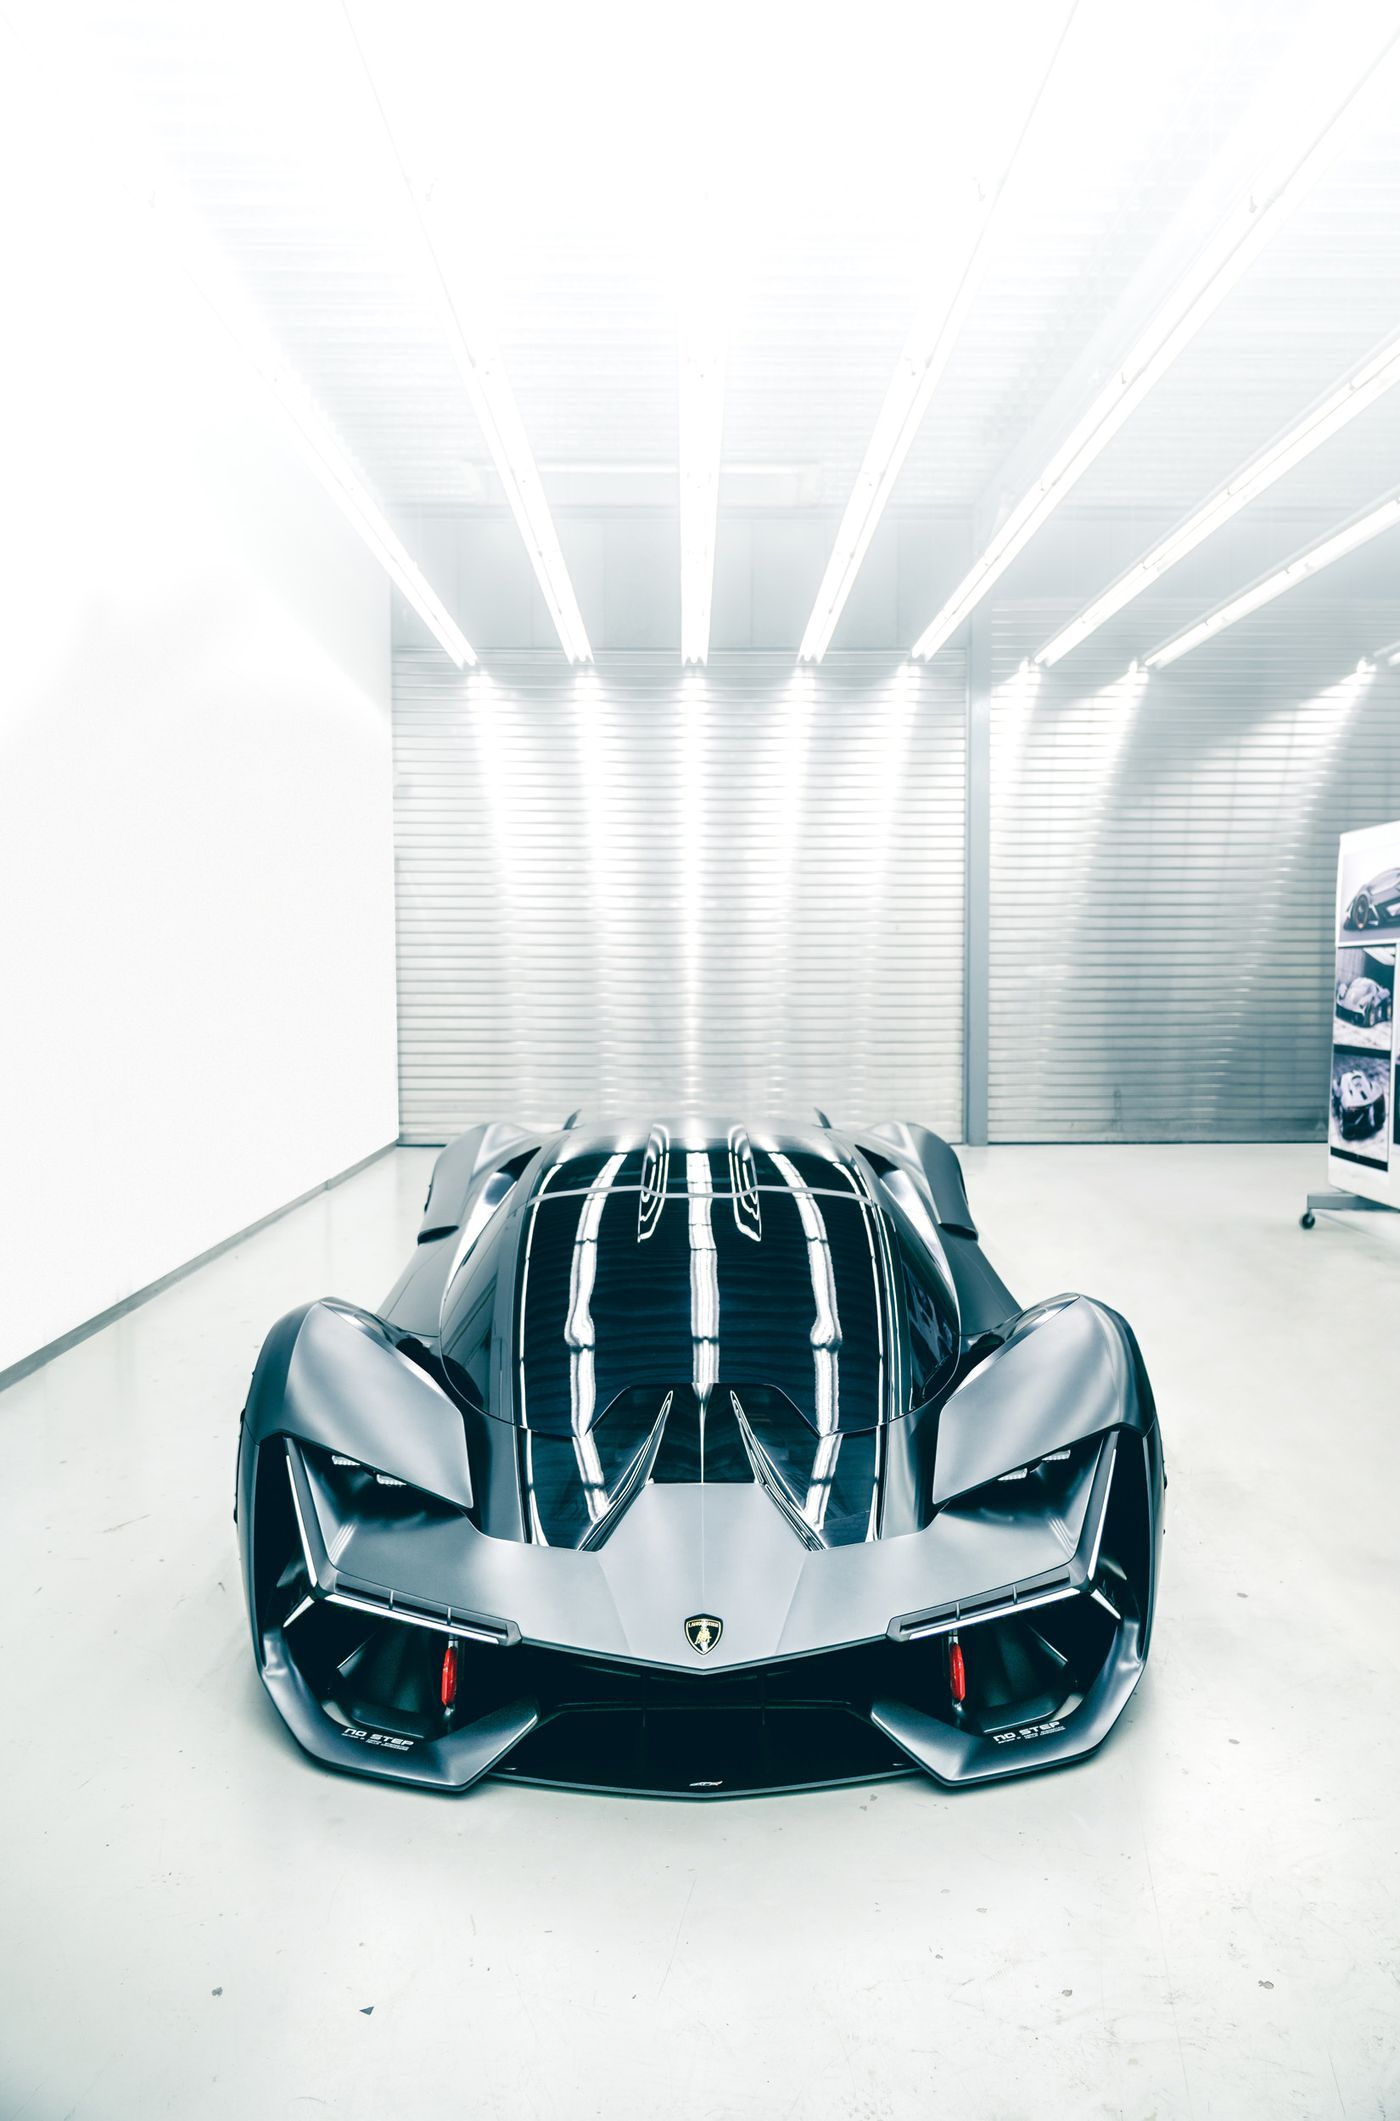 The Lamborghini Terzo Millennio Concept Is A Lightning Strike From The Future The Verge